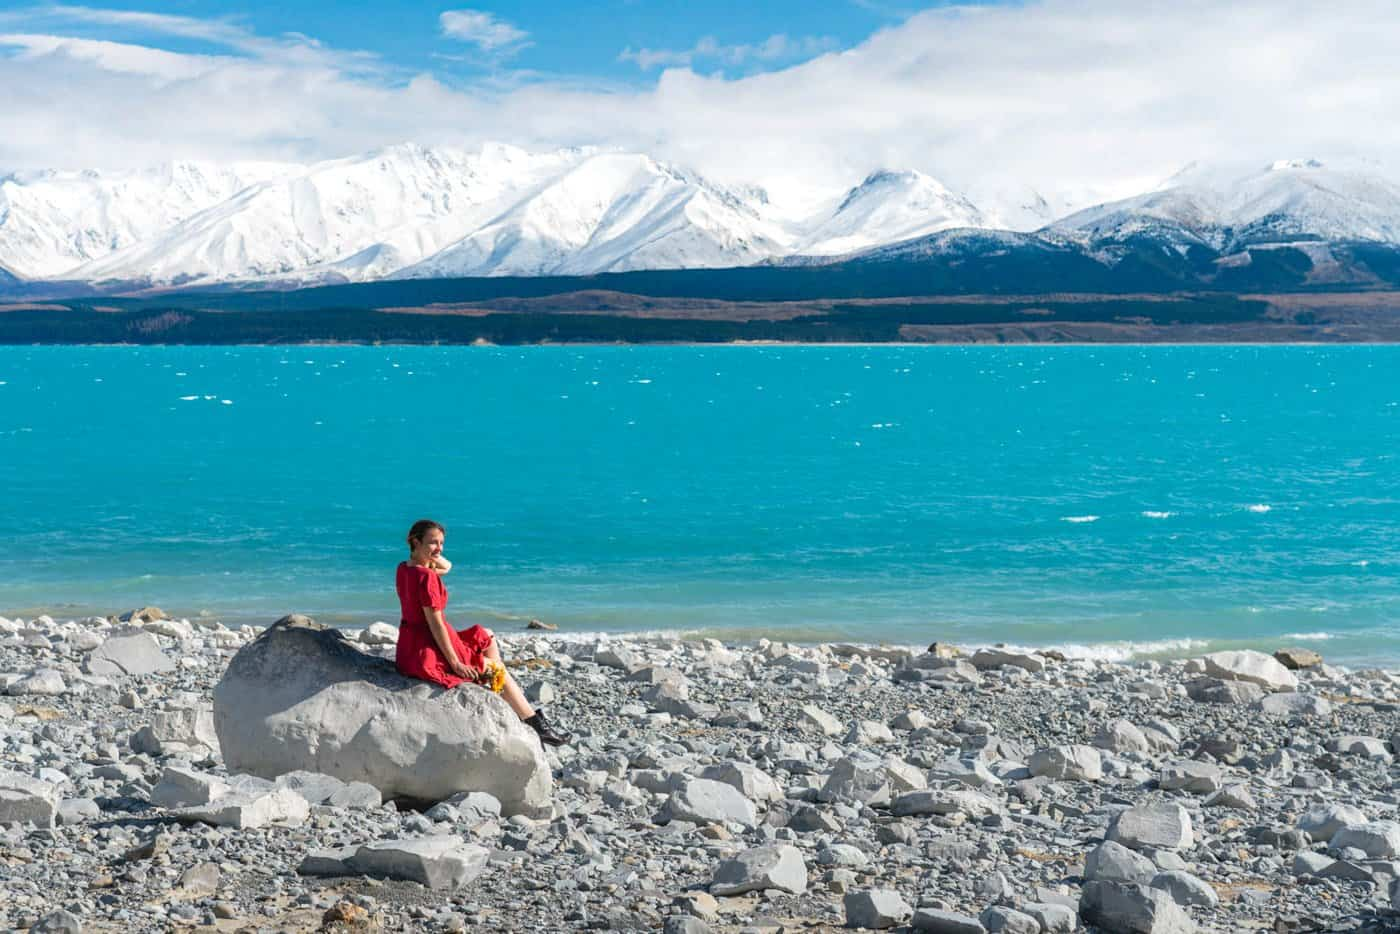 The incredibly colored Lake Pukaki lies on the doorstep of the Southern Alps.